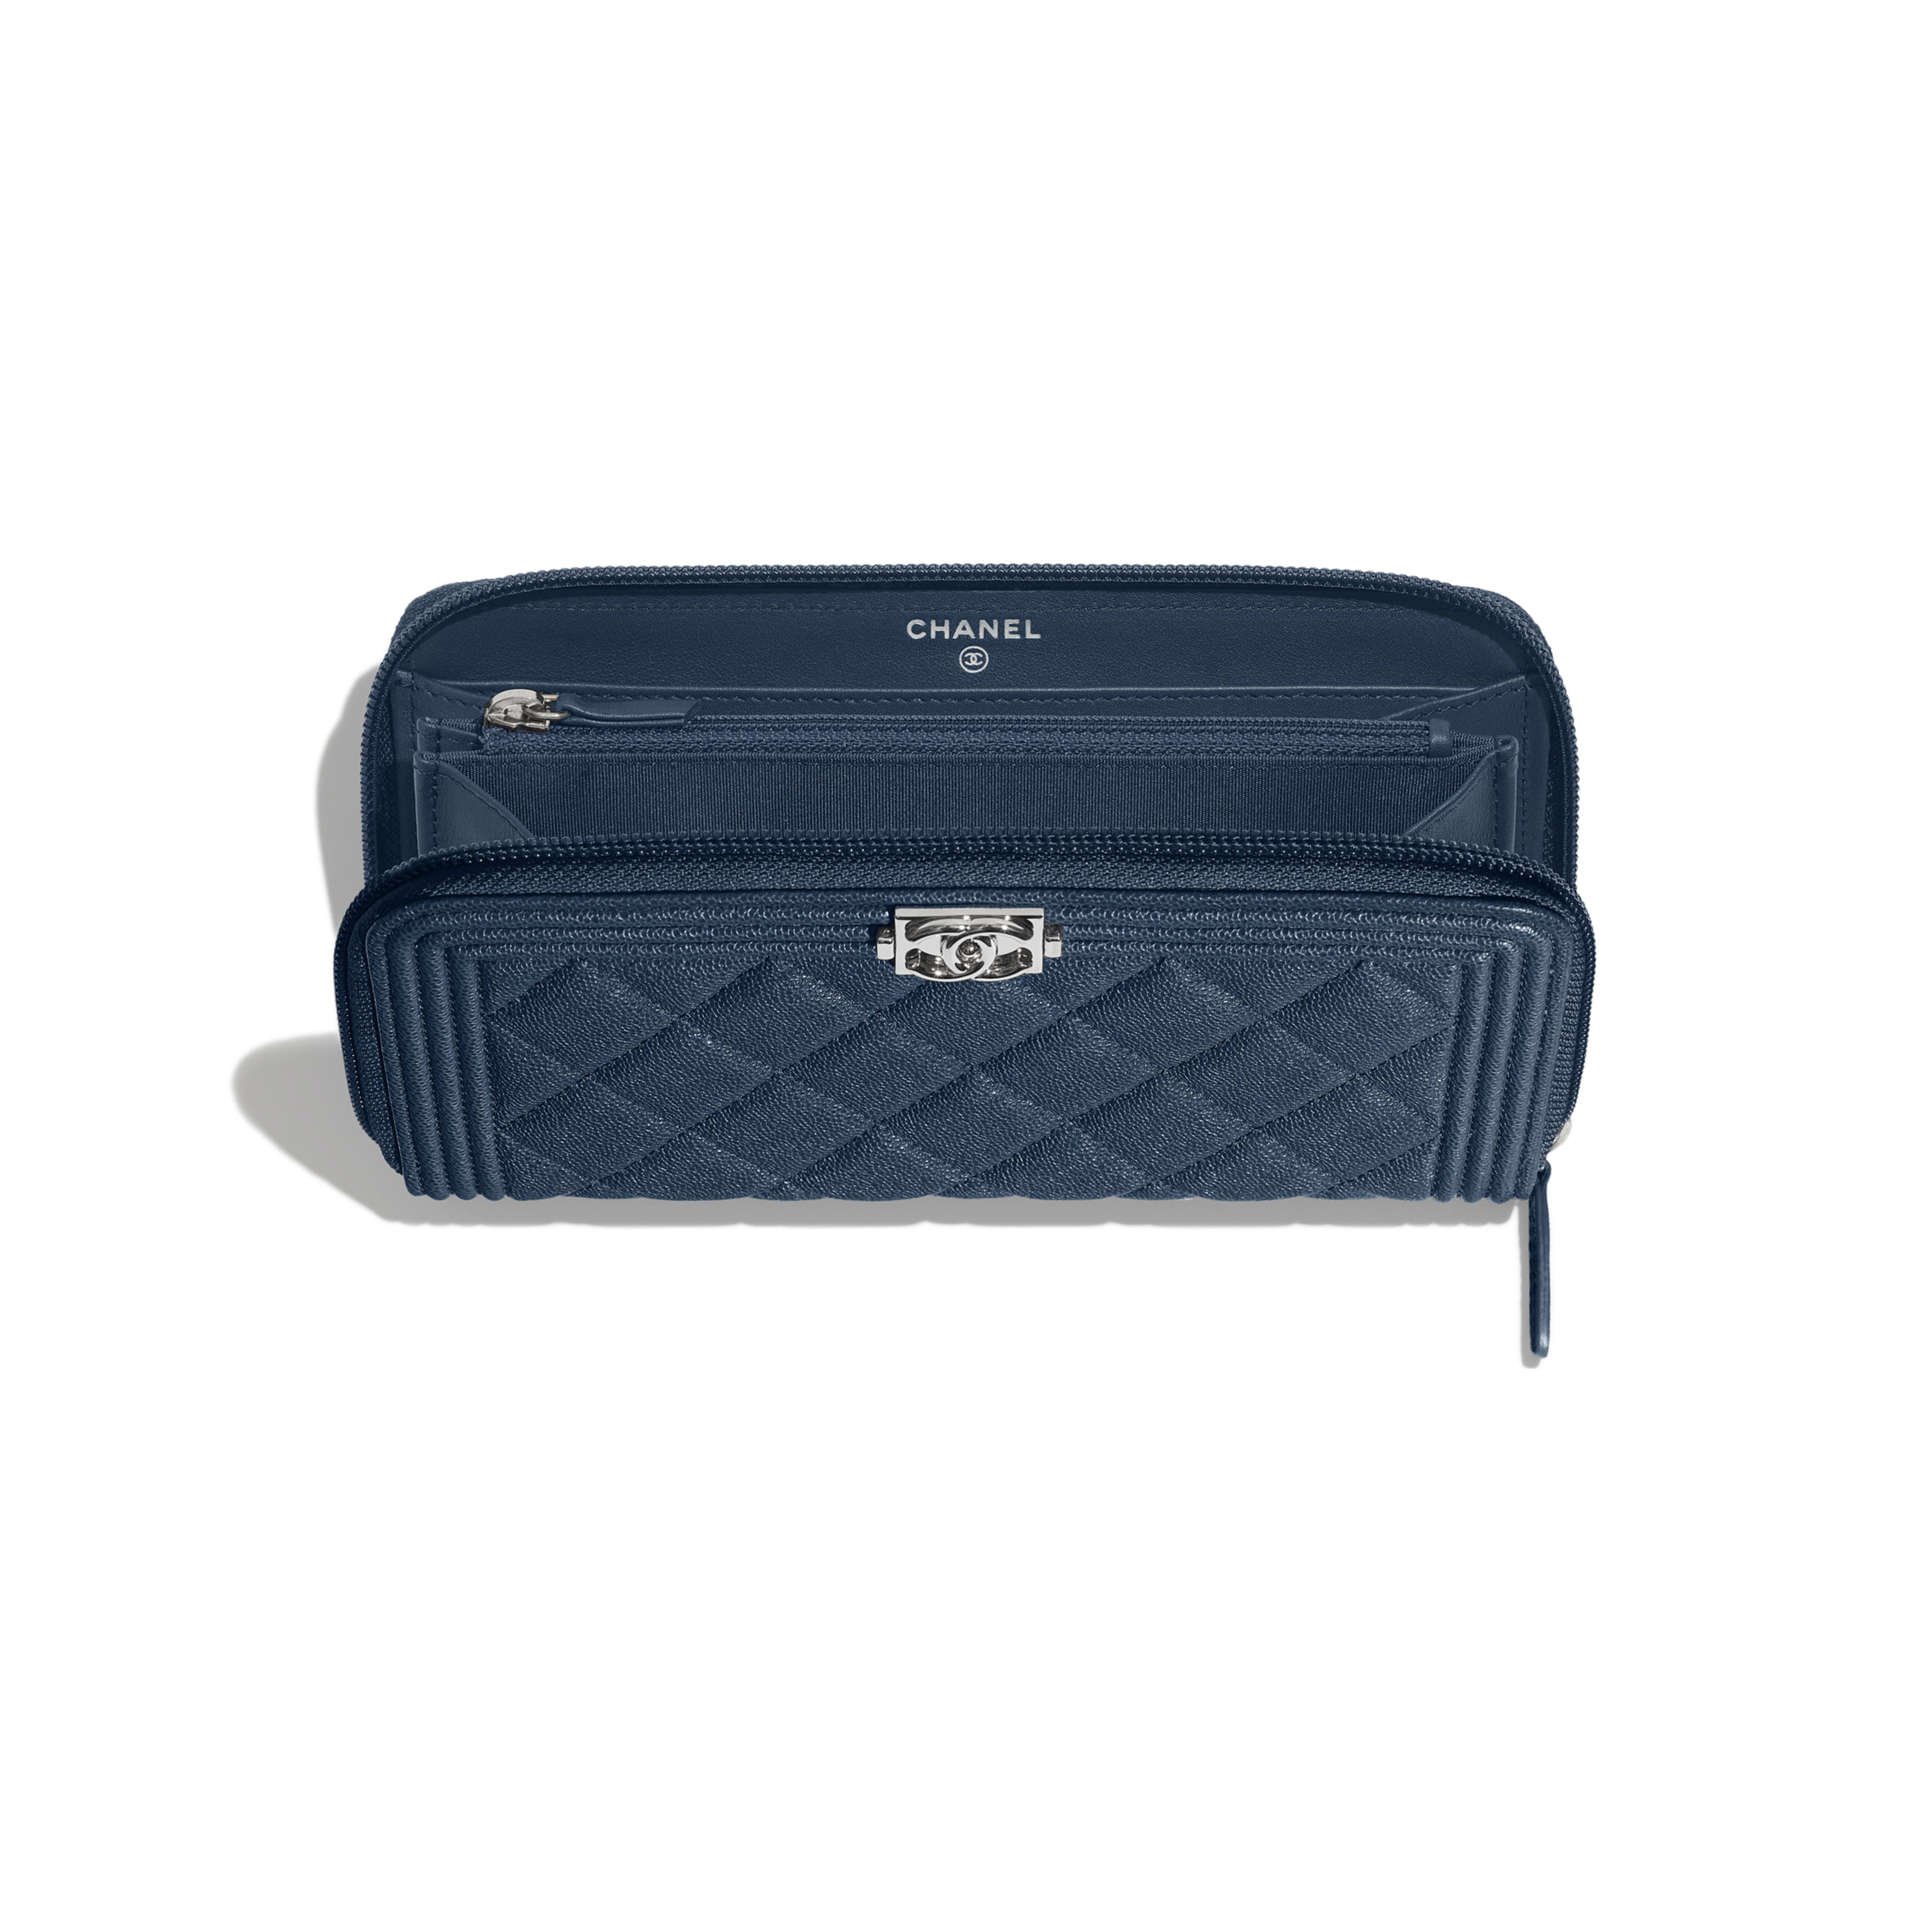 BOY CHANEL Long Zipped Wallet - Blue - Grained Calfskin & Silver Metal - Other view - see full sized version